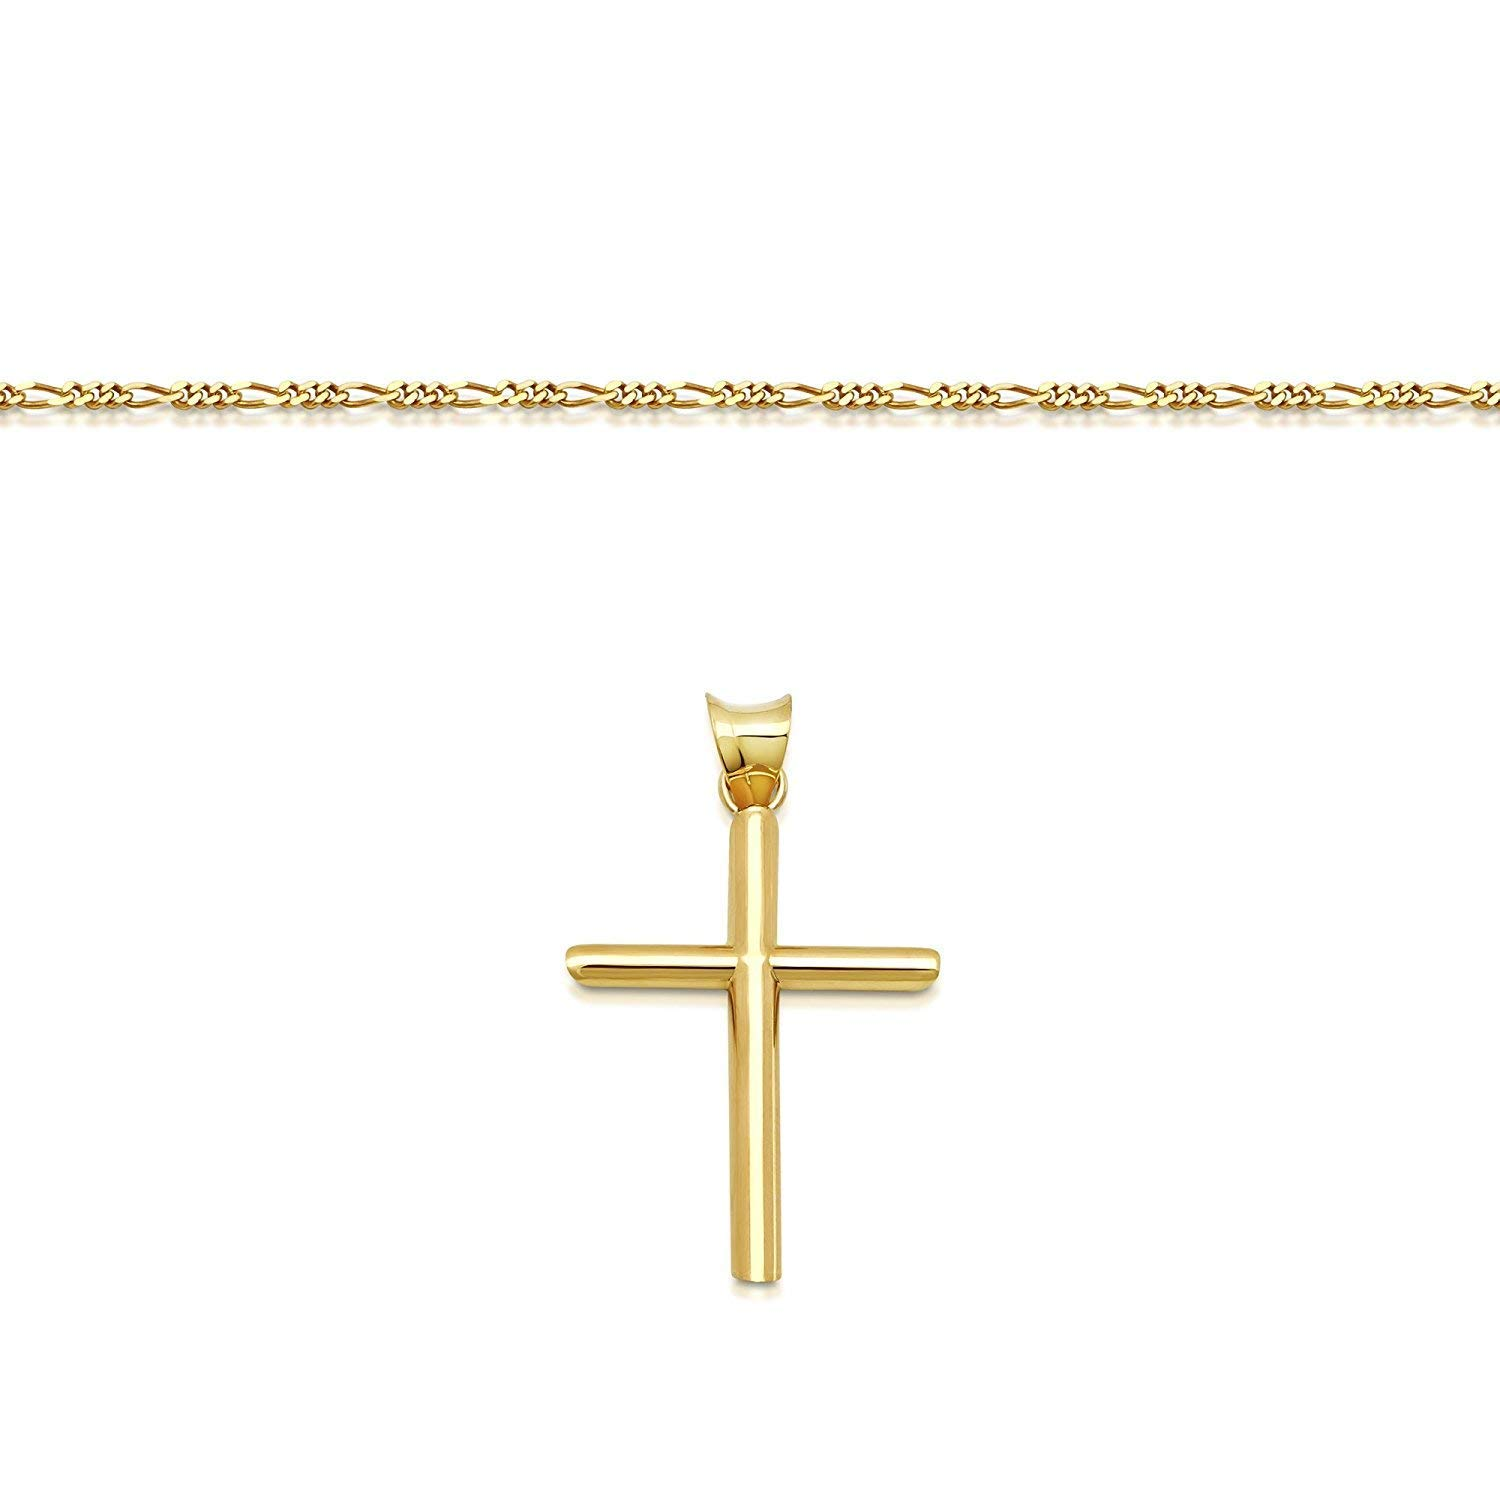 "DAYA Empire 14K Gold Figaro Chain Style Cross Pendant Necklace Solid Clasp for Men,Women,Teens,Children Thin for Charms Choose Length 18"" or 22'' Miami Cuban Link Diamond Cut (20) by DAYA Empire (Image #2)"